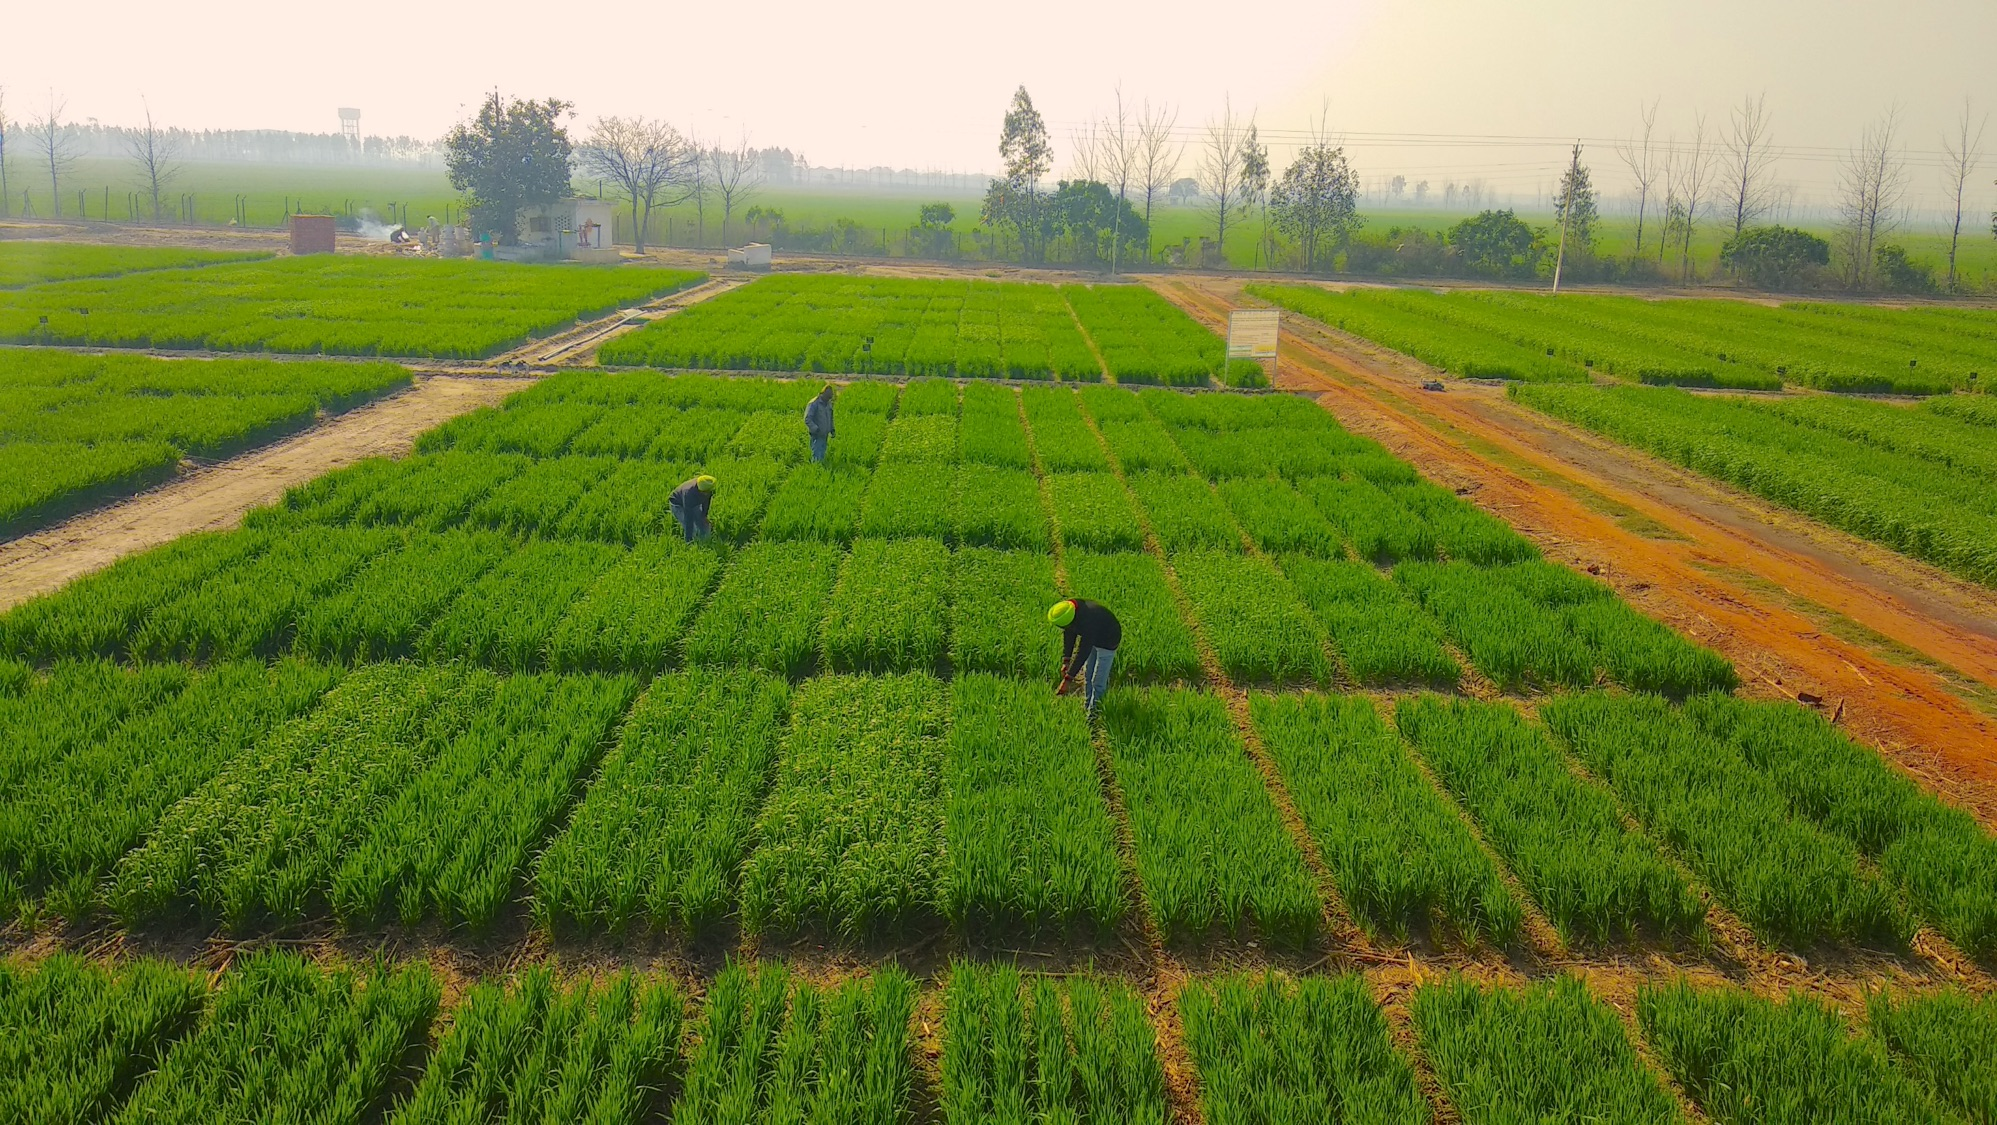 A pioneering study demonstrates how rice and wheat can be grown using 40 percent less water, through an innovative combination of existing irrigation and cropping techniques. (Photo: Naveen Gupta/CIMMYT)